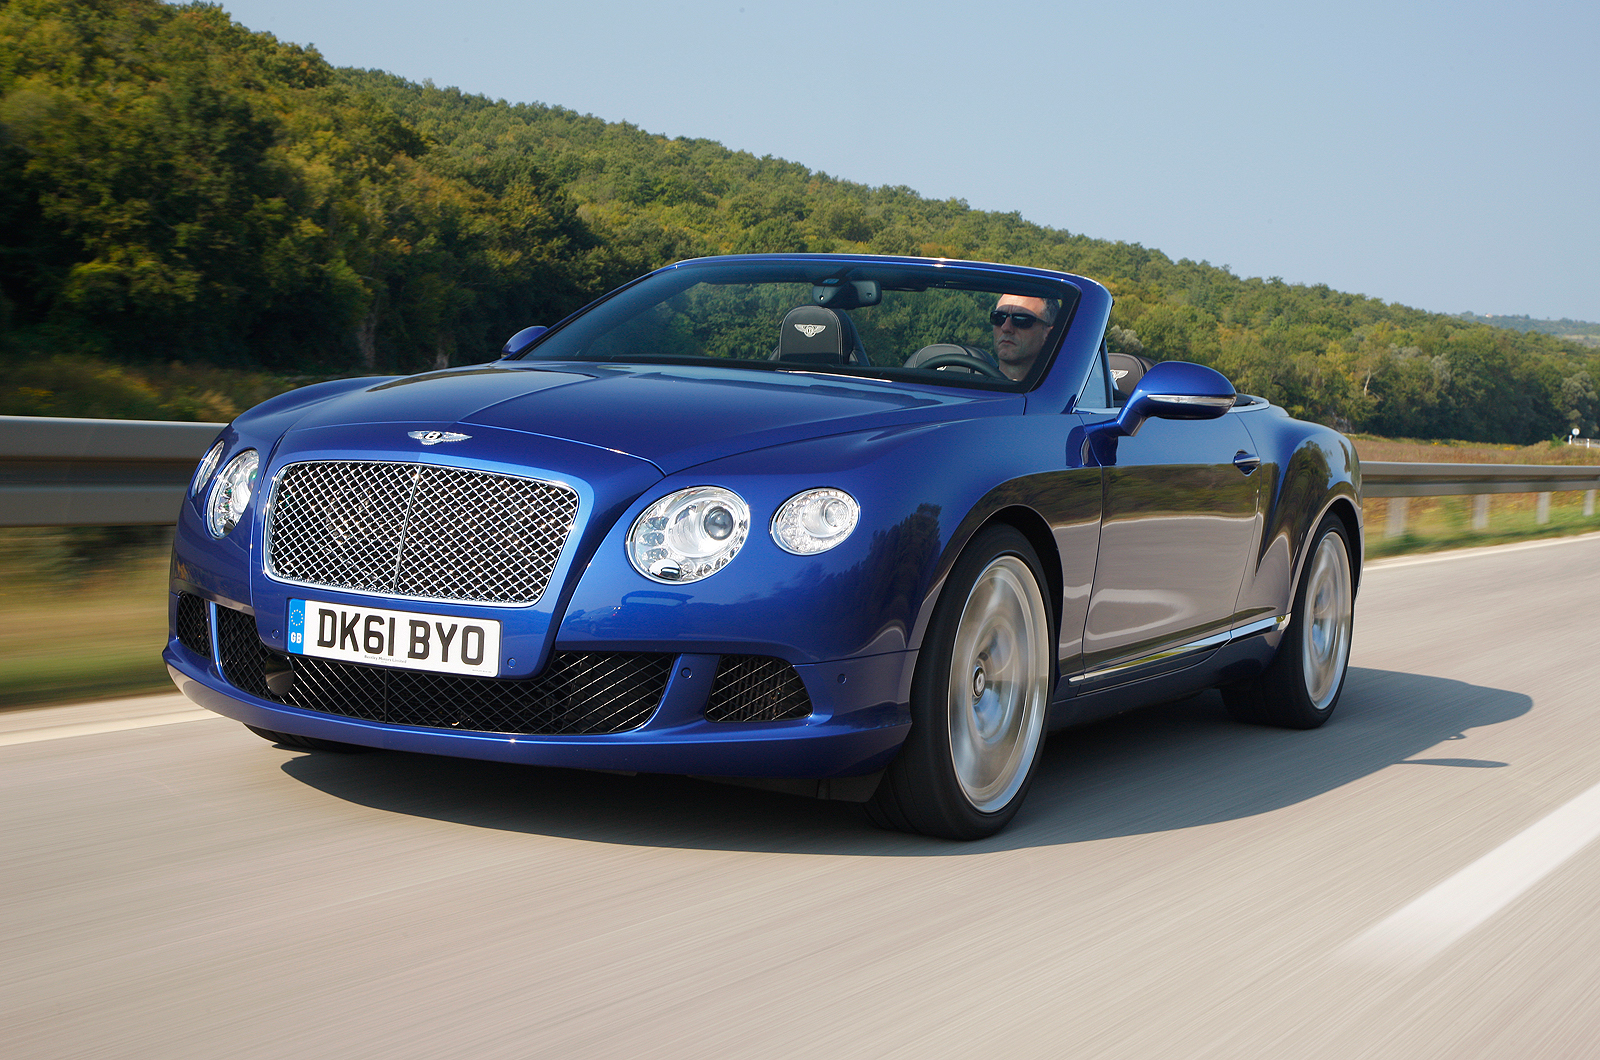 2017 Bentley Continental GT V8 S Convertible photo - 1